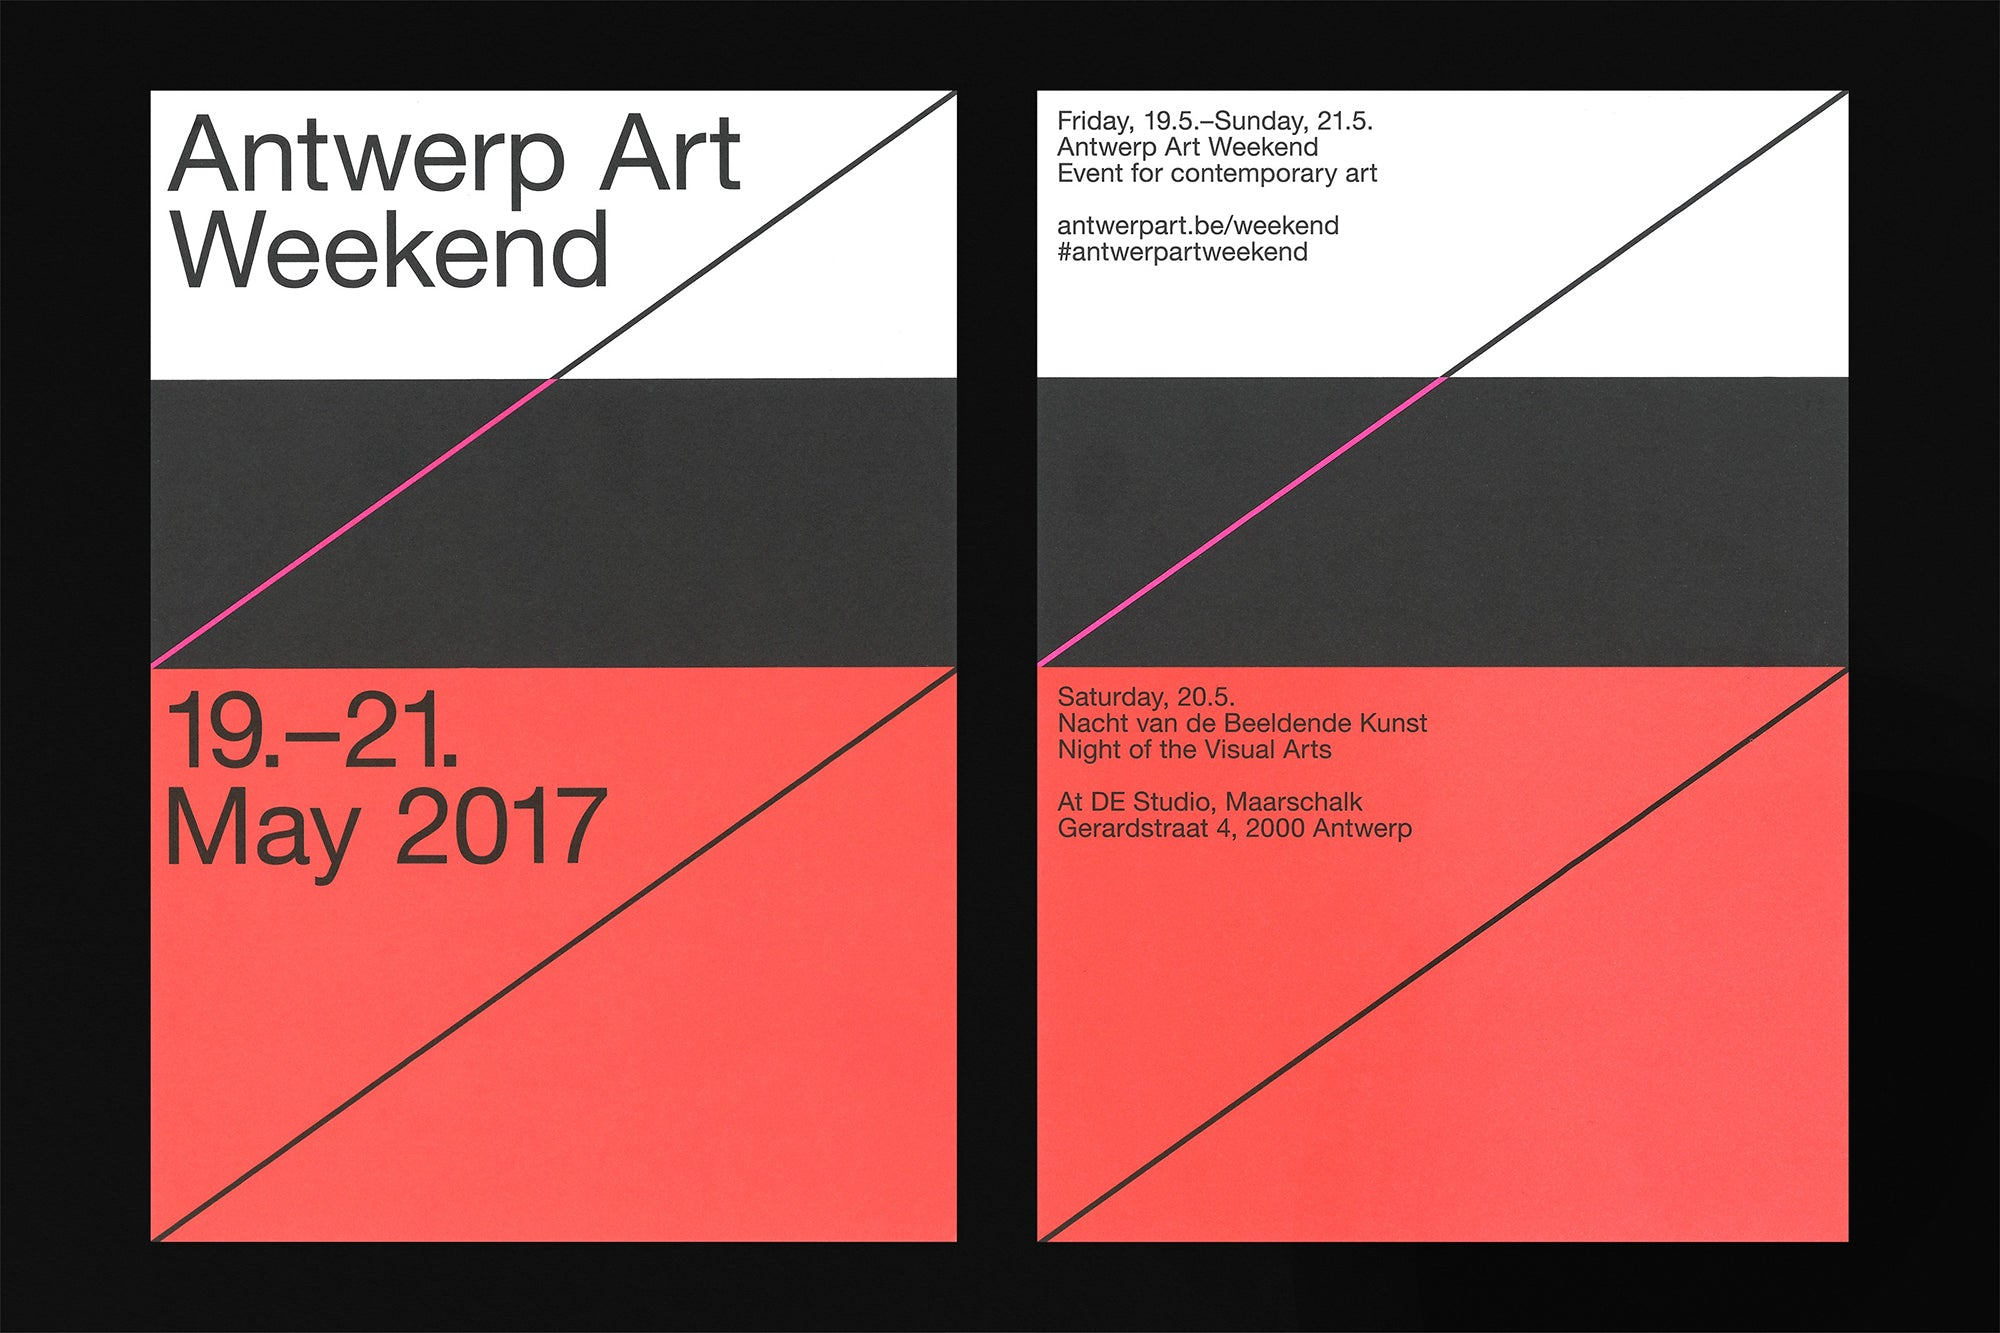 Vrints-Kolsteren: Antwerp Art Weekend 2017